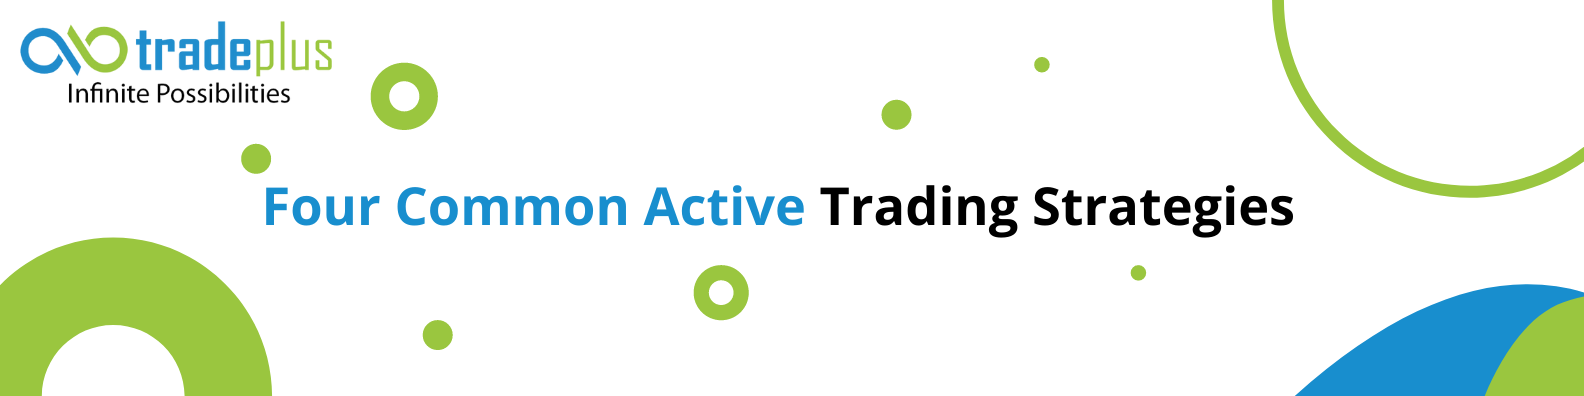 The four common active trading strategies The Four Common Active Trading Strategies